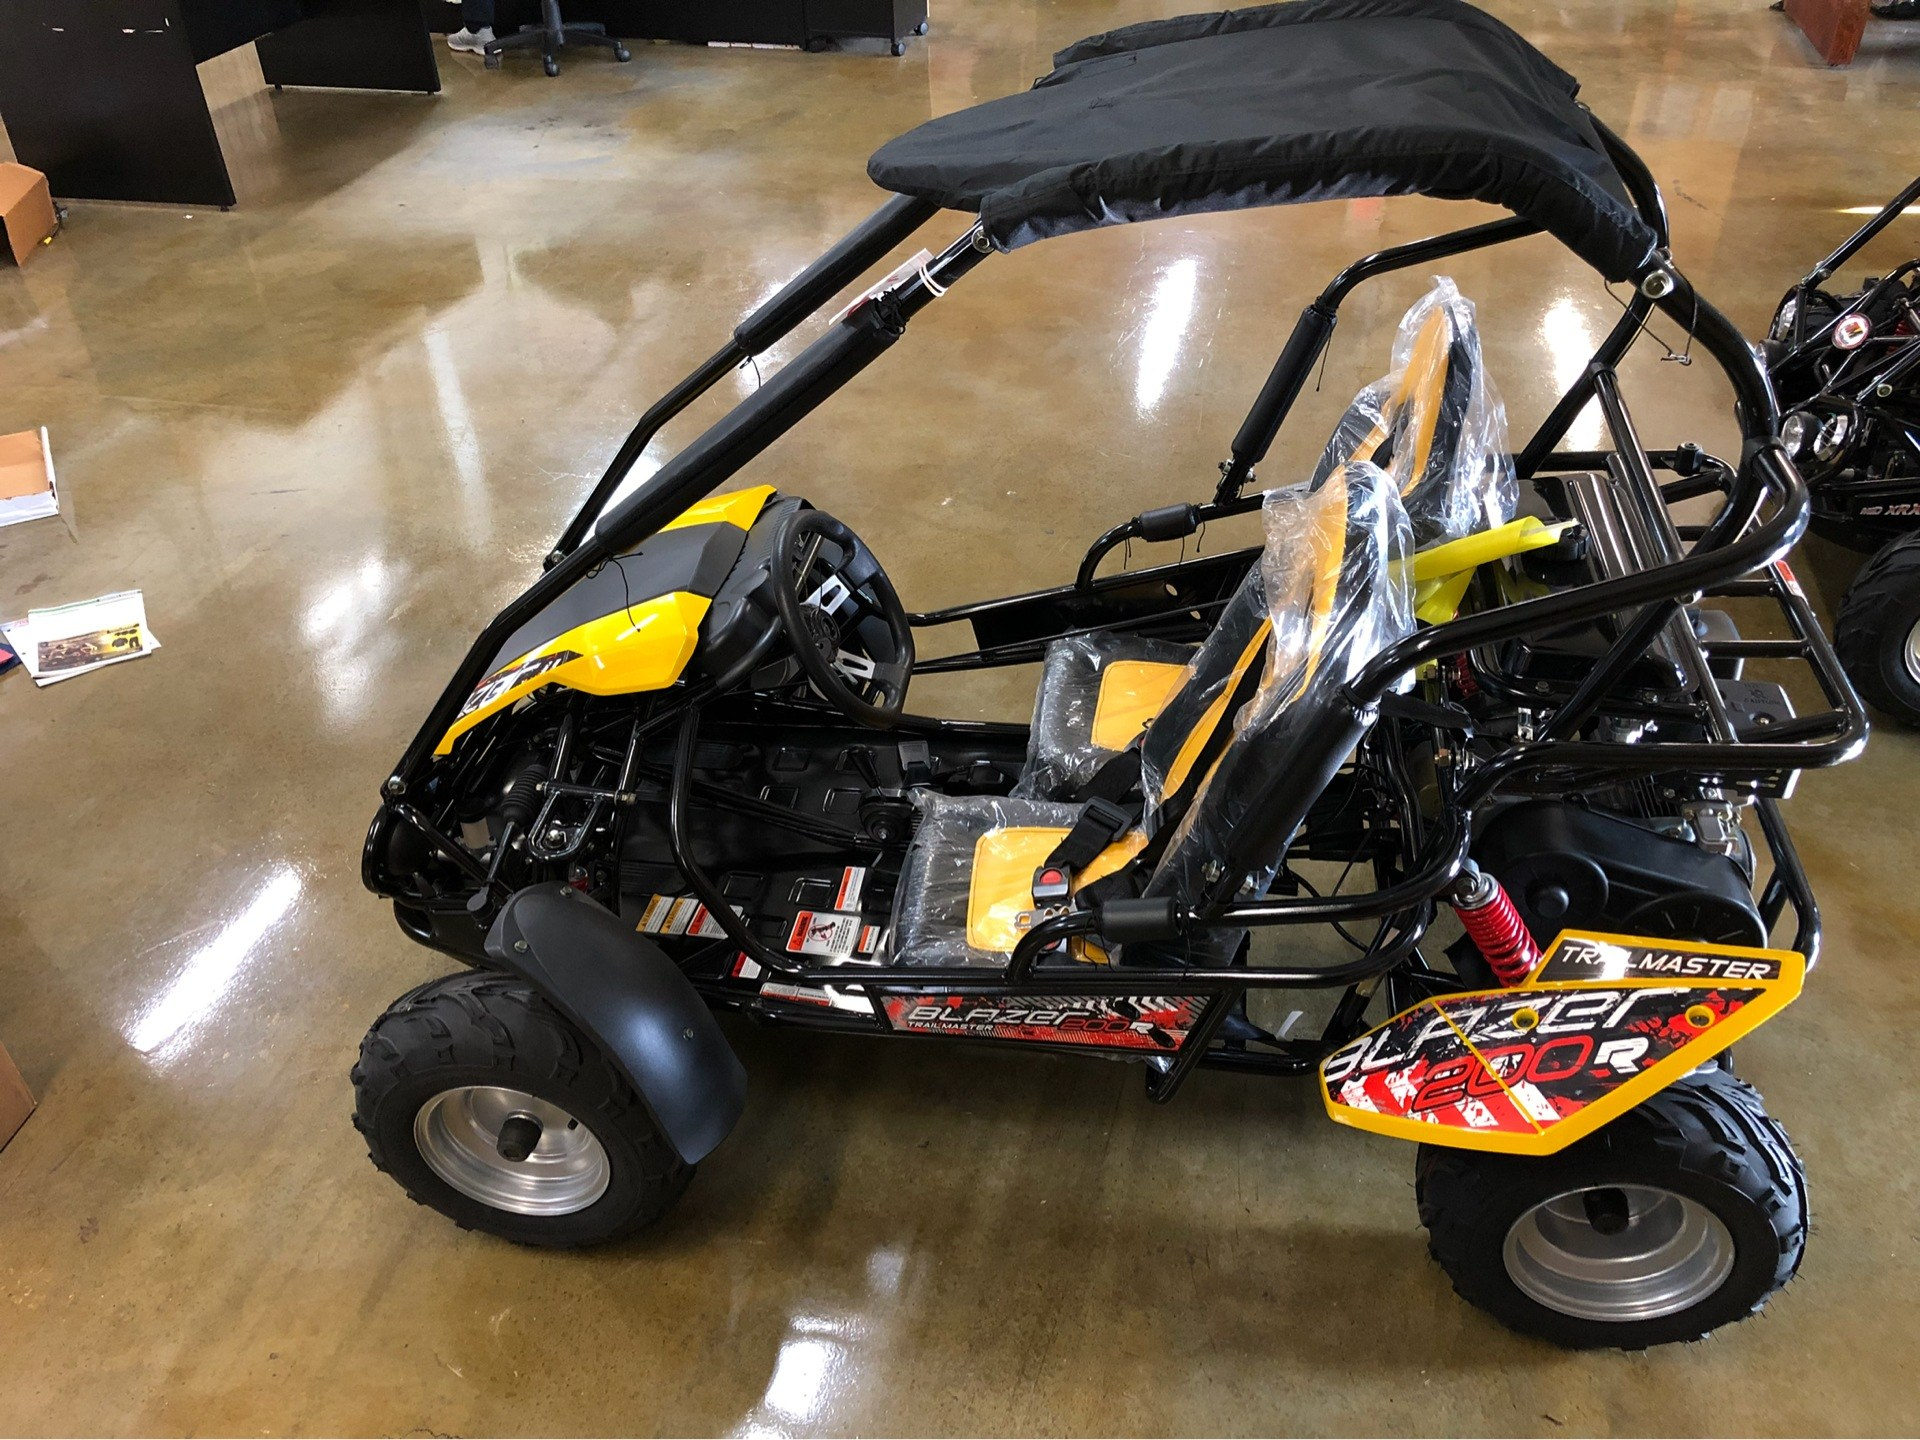 2018 Karting Distributors Inc. BLAZER 200R in Louisville, Tennessee